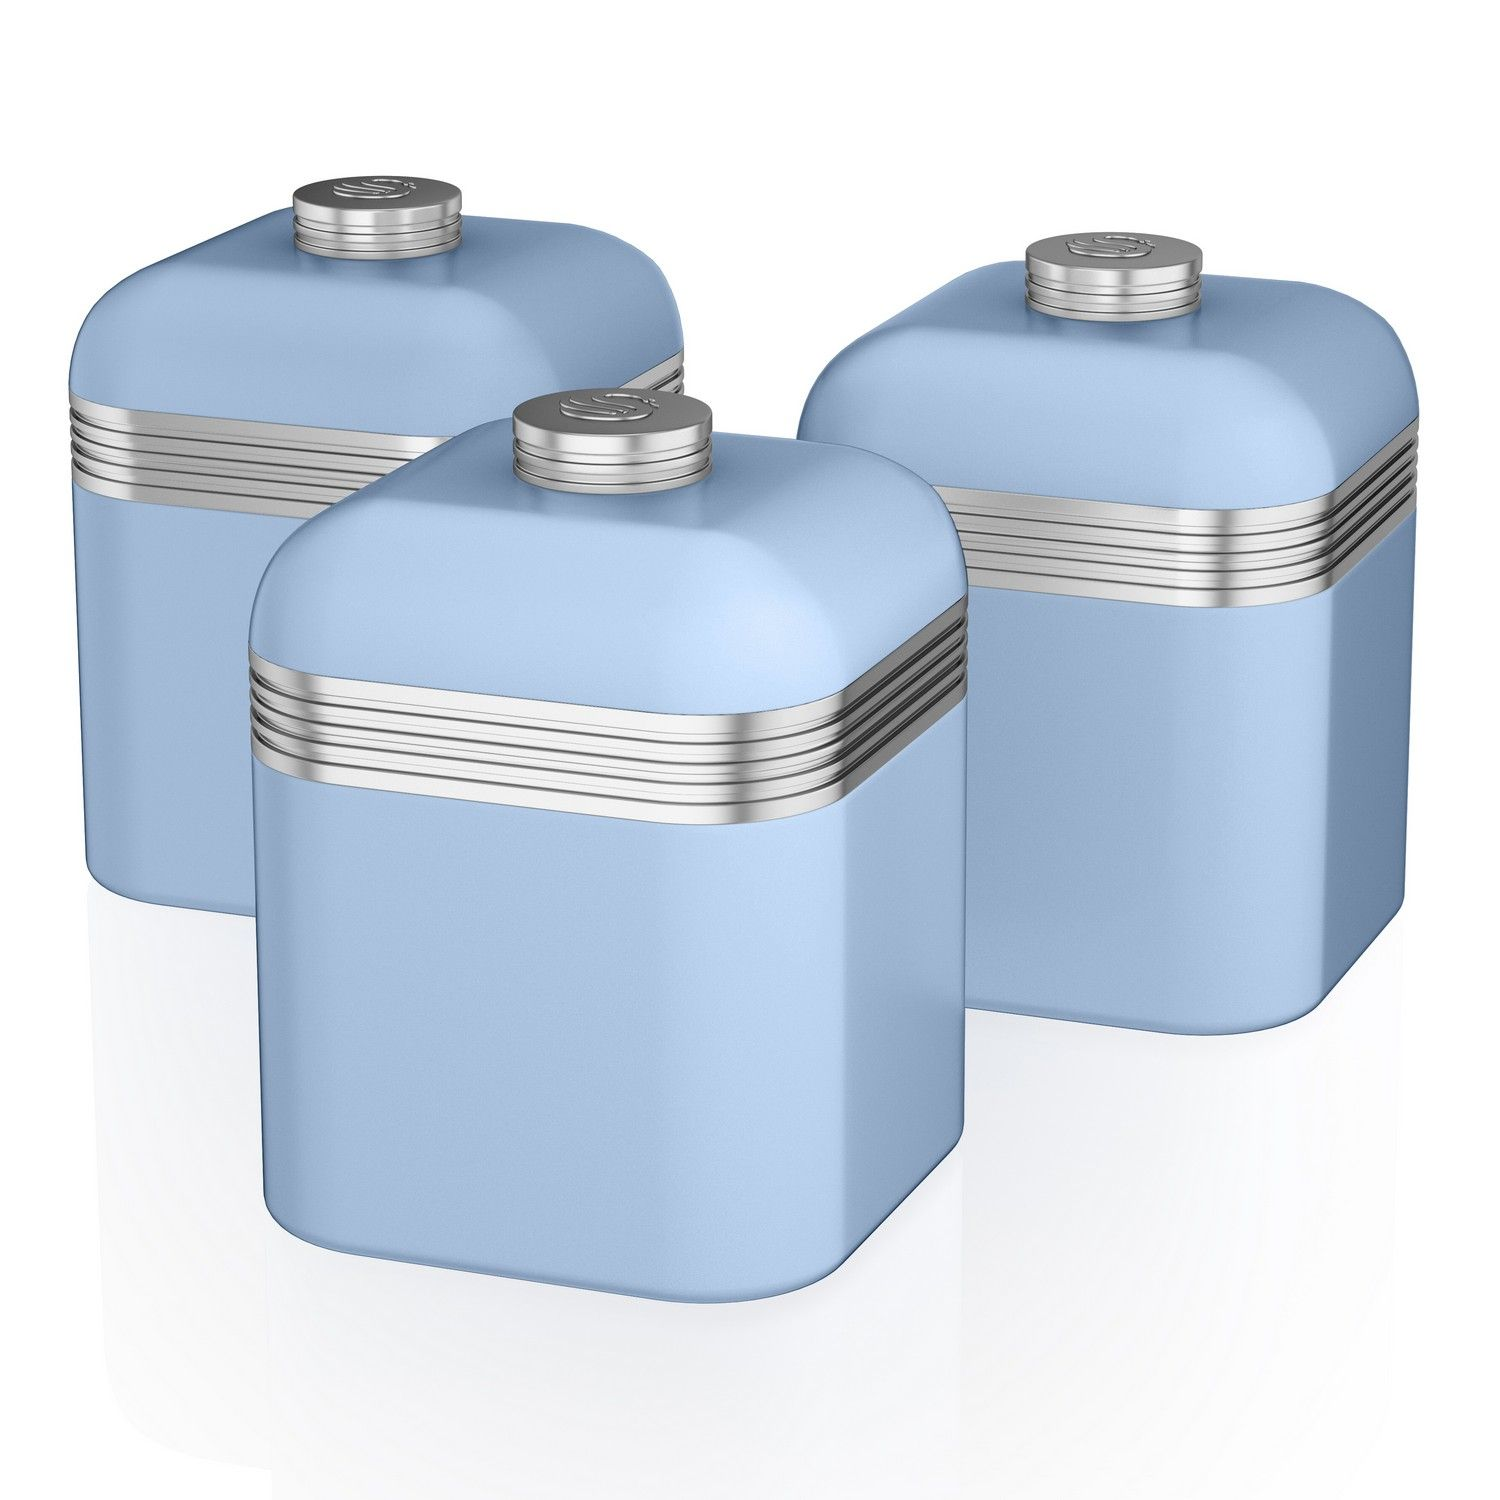 Swan Set Of 3 Tea Coffee Sugar Blue Canisters Jar Kitchen Storage Containers Tin